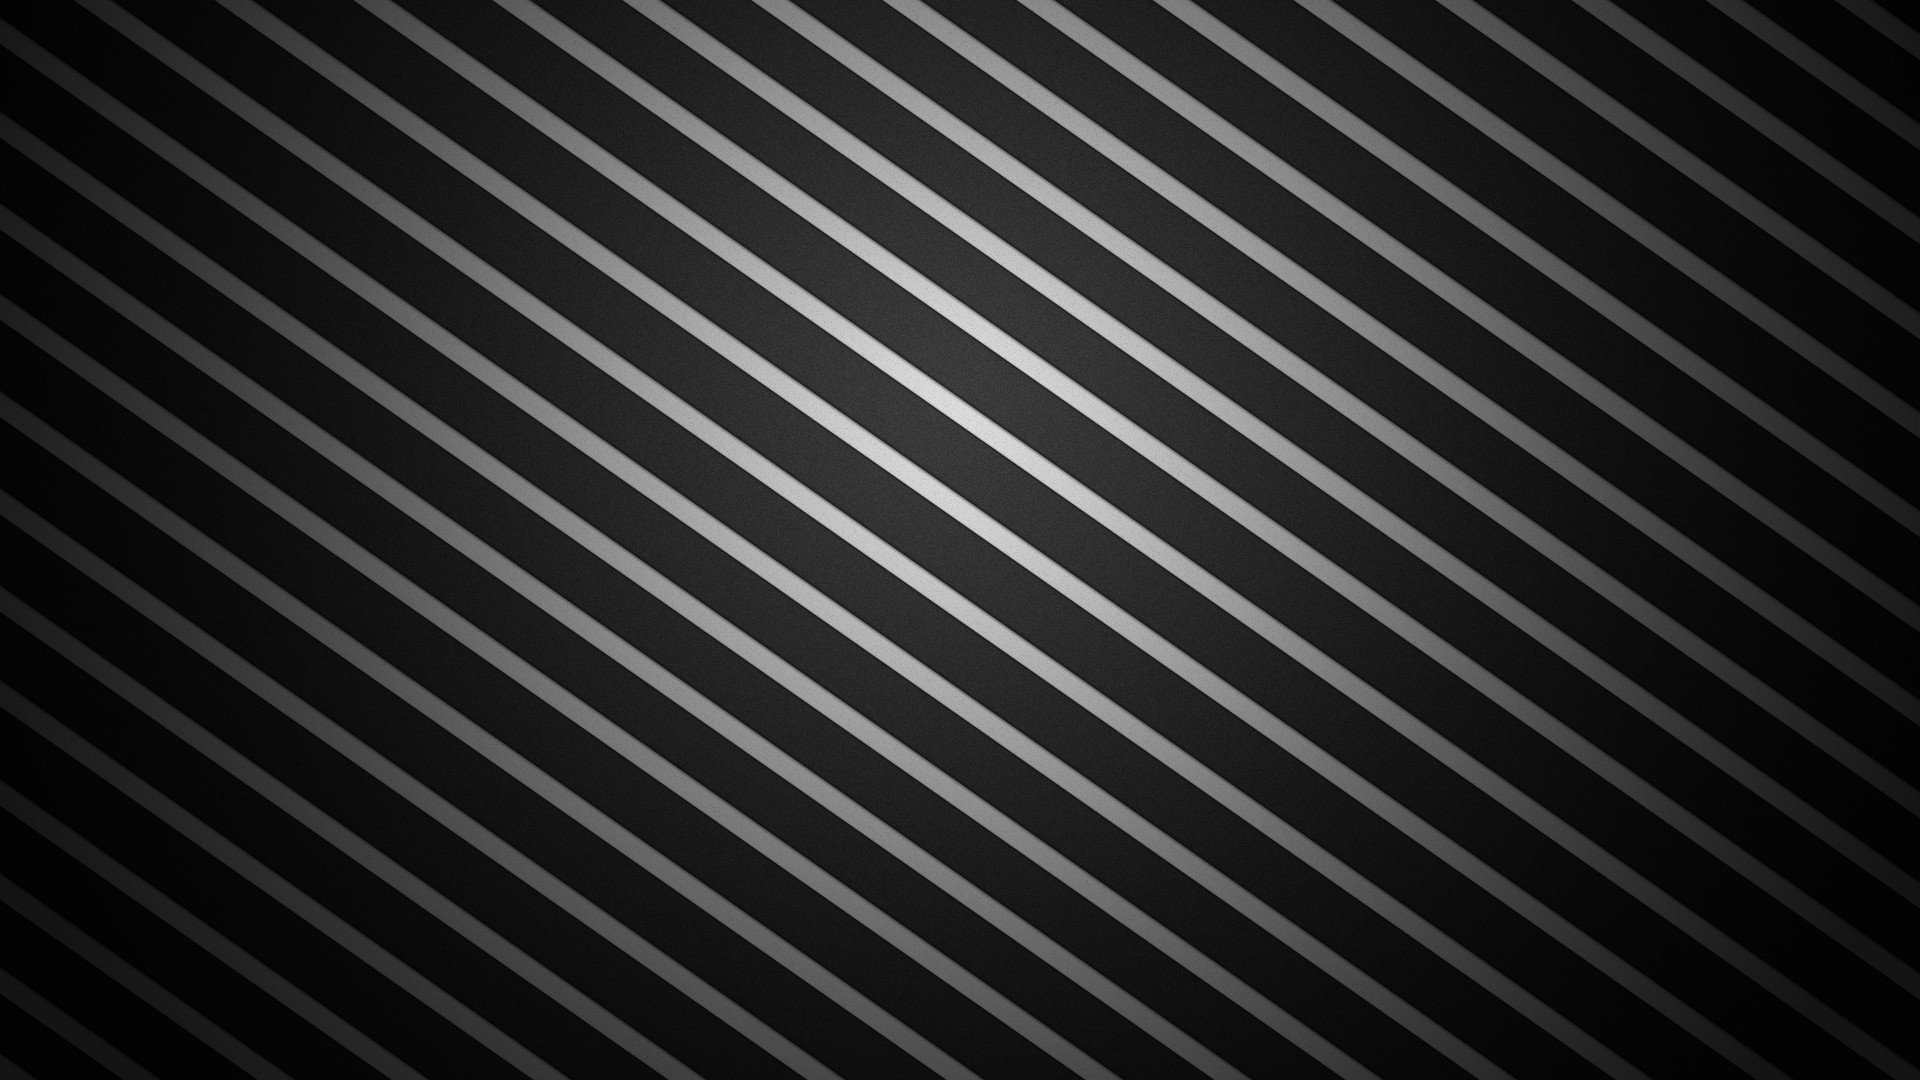 black and white abstract wallpapers  wallpapersafari - abstract black wallpapers wallpaper images x